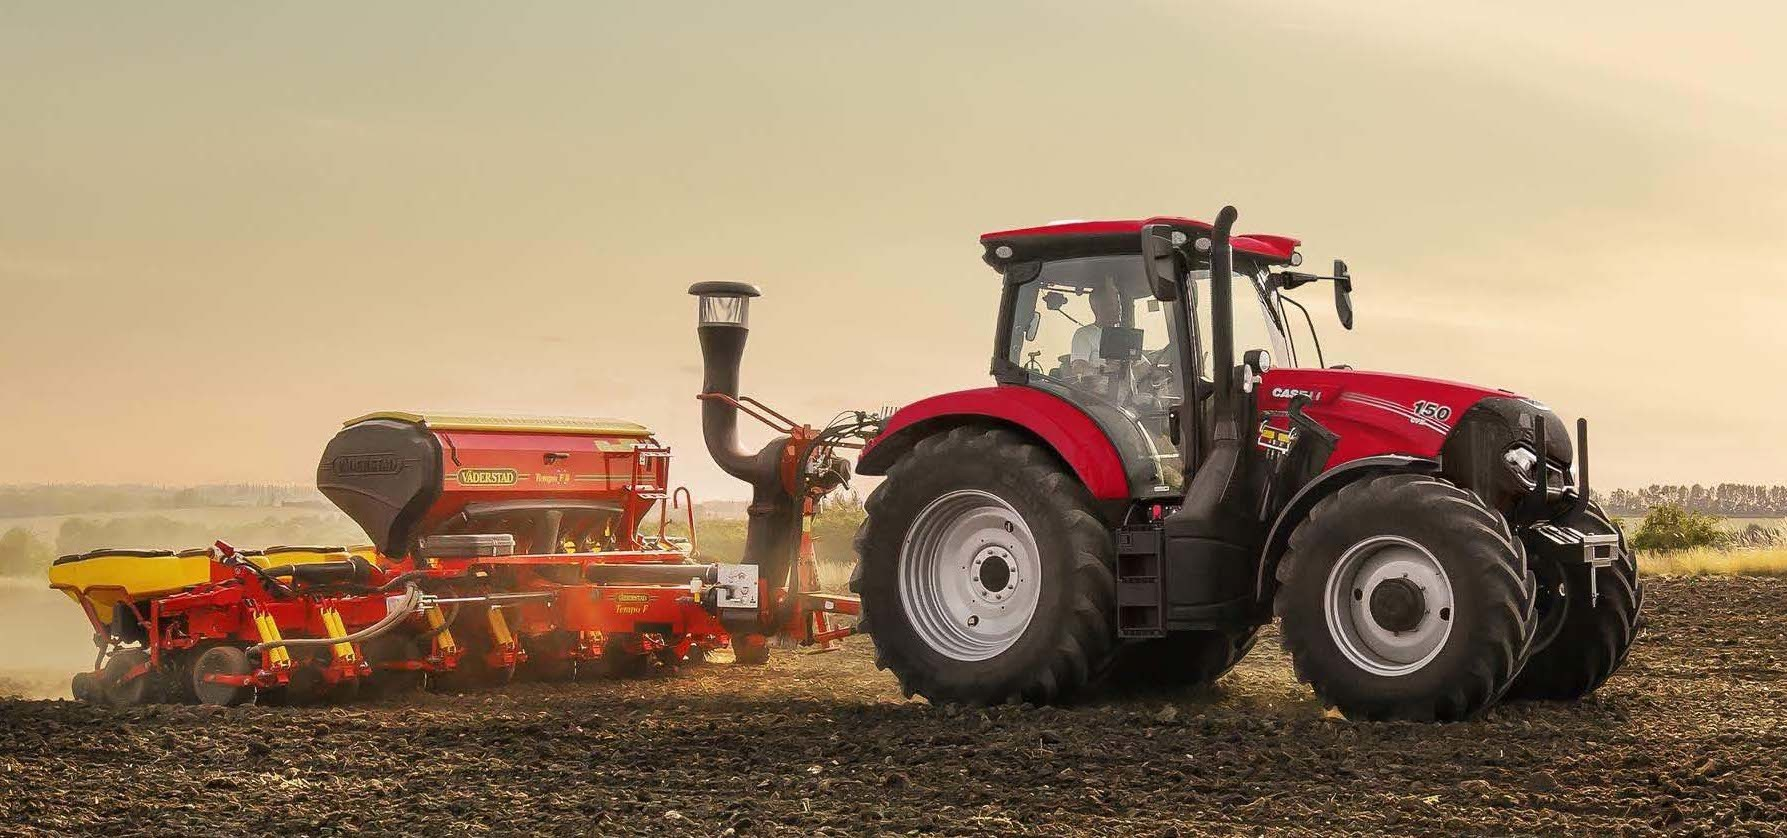 Tow Tractors: The Benefits They Offer & Tips For Buying One